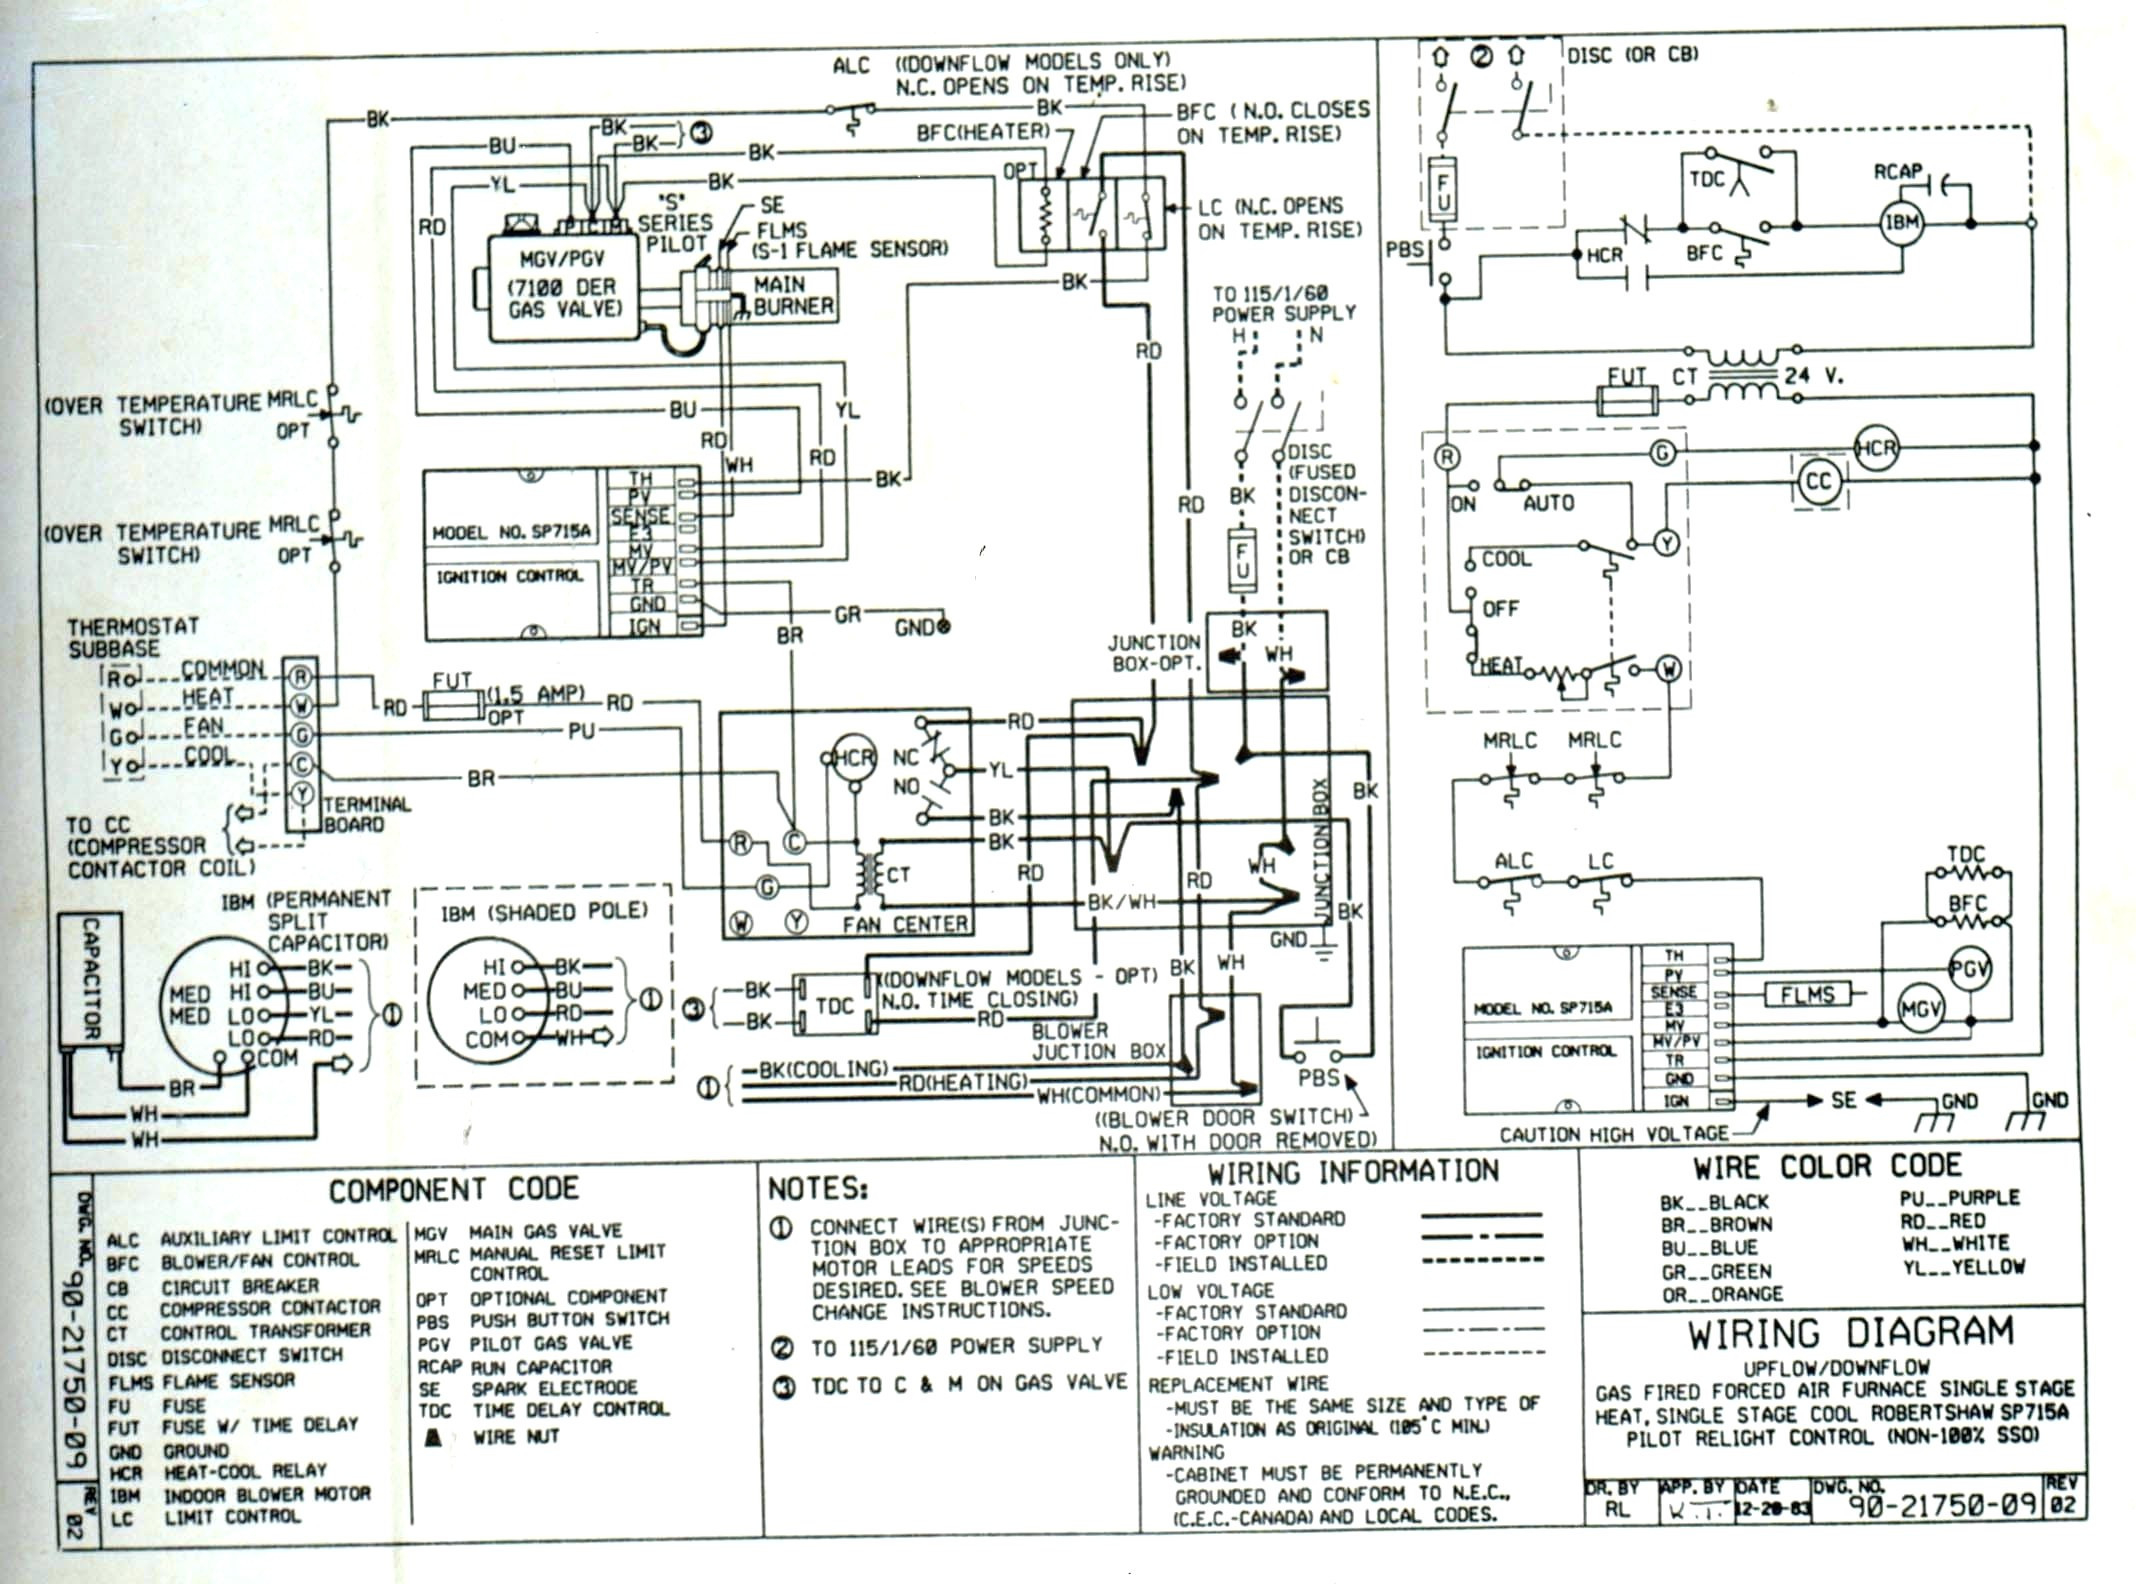 hvac heat strip contactor diagram car wiring diagrams explained u2022 rh ethermag co